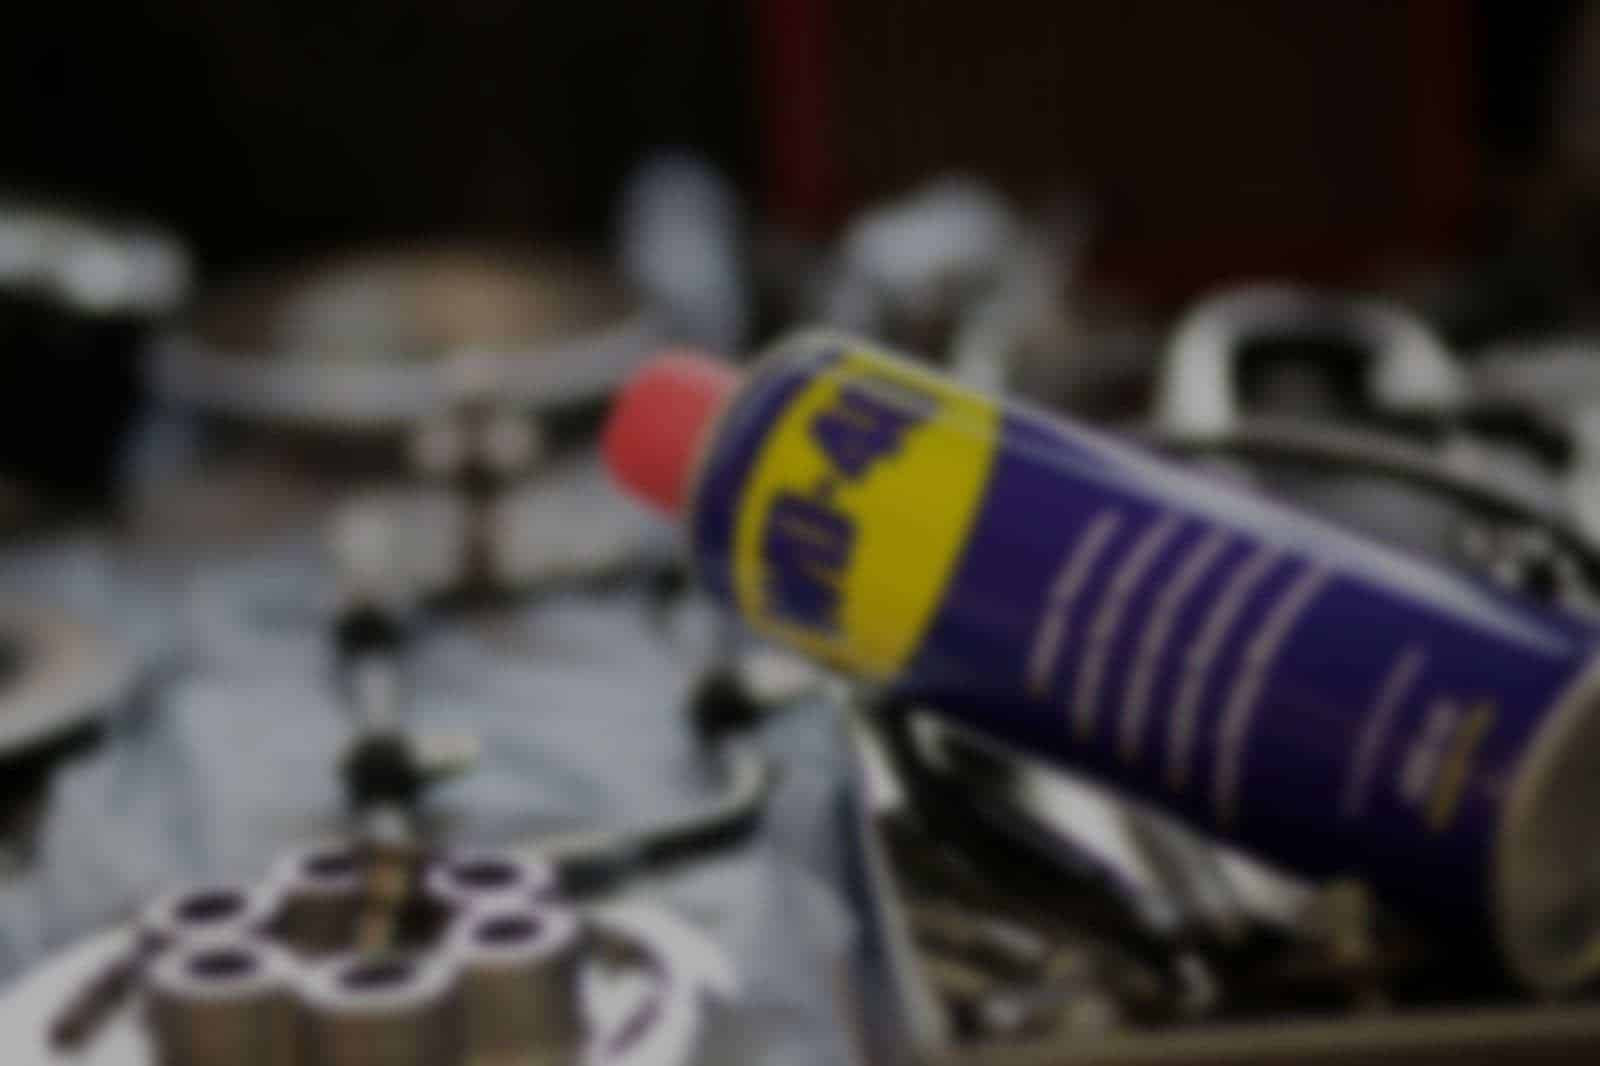 producto wd 40 banner